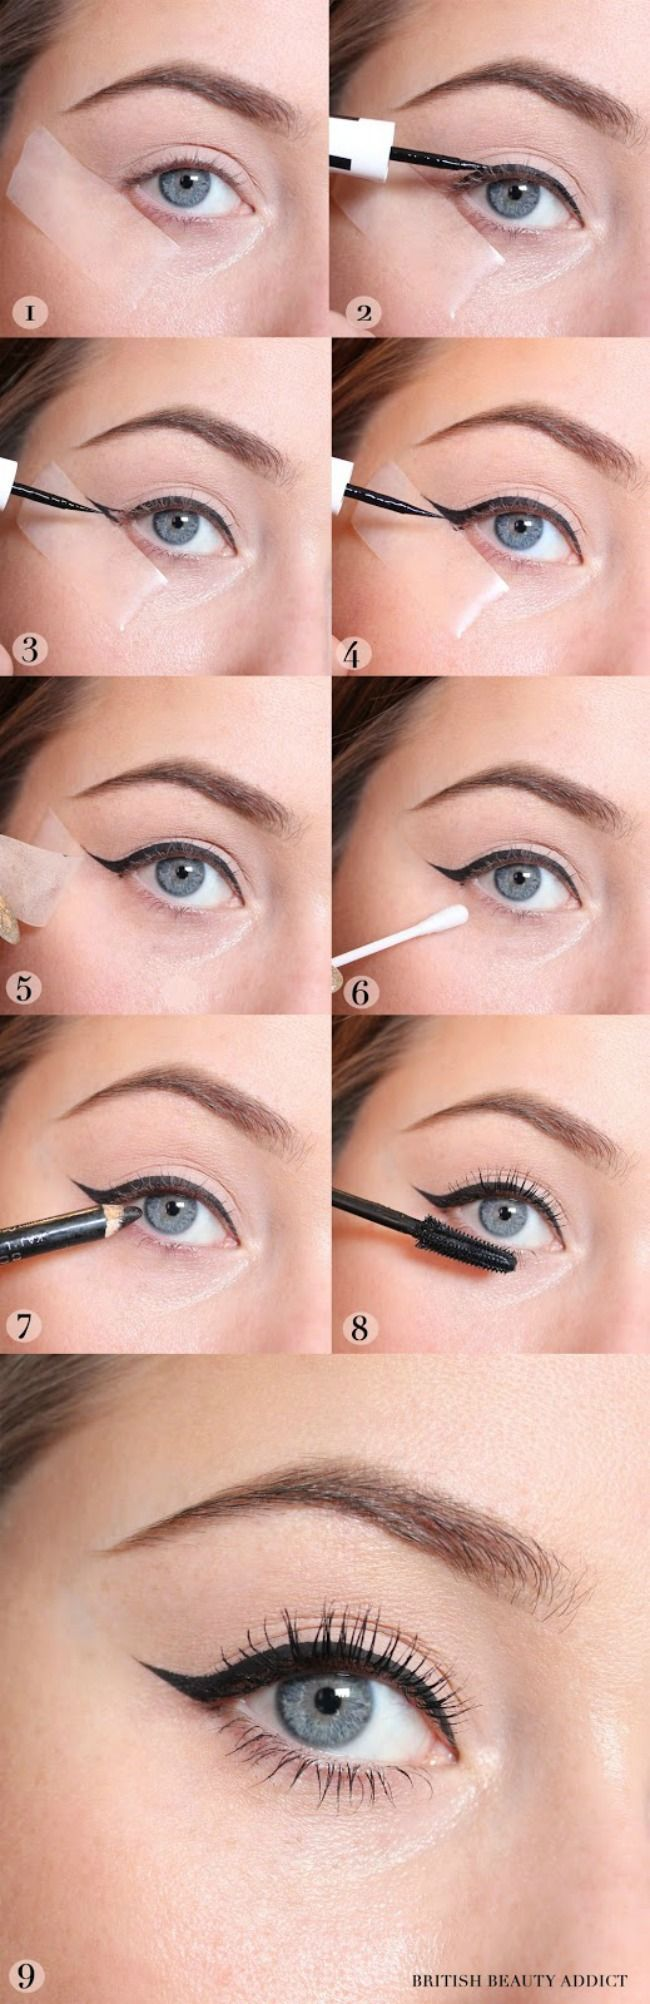 The 11 Best Eye Makeup Tips and Tricks | Winged Eyeliner Trick Using Tape